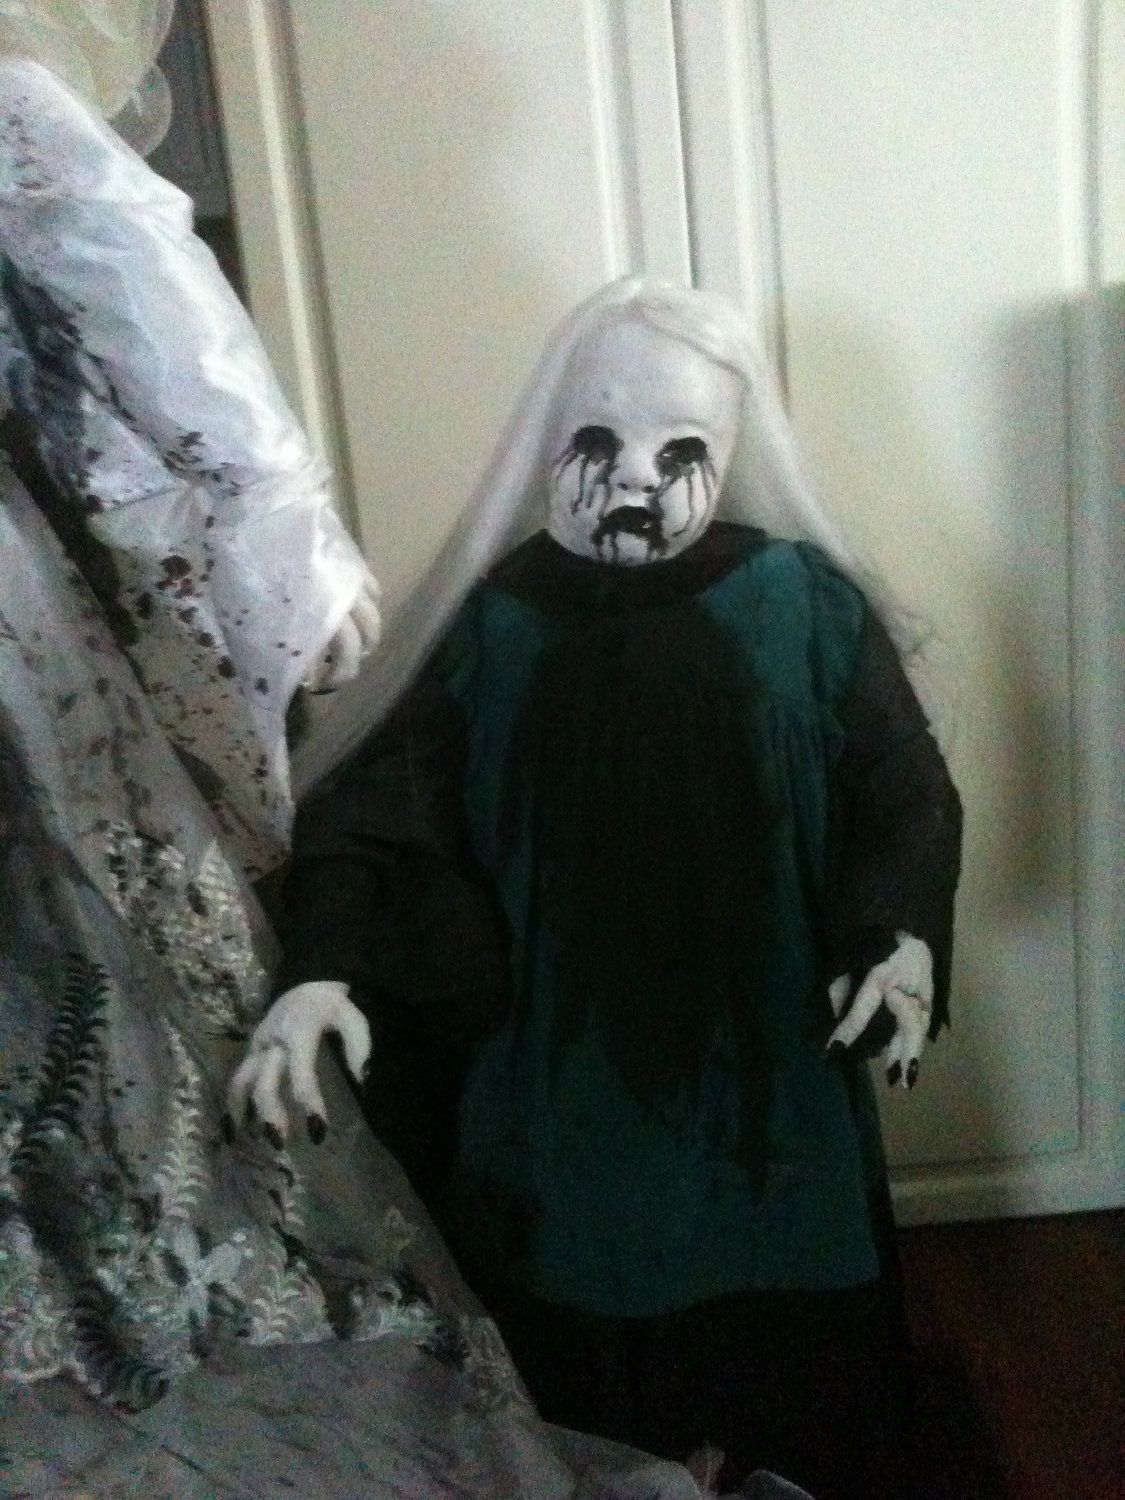 Halloween Prop Creepy Spooky Child Ghost Creepy Doll Face 65 00